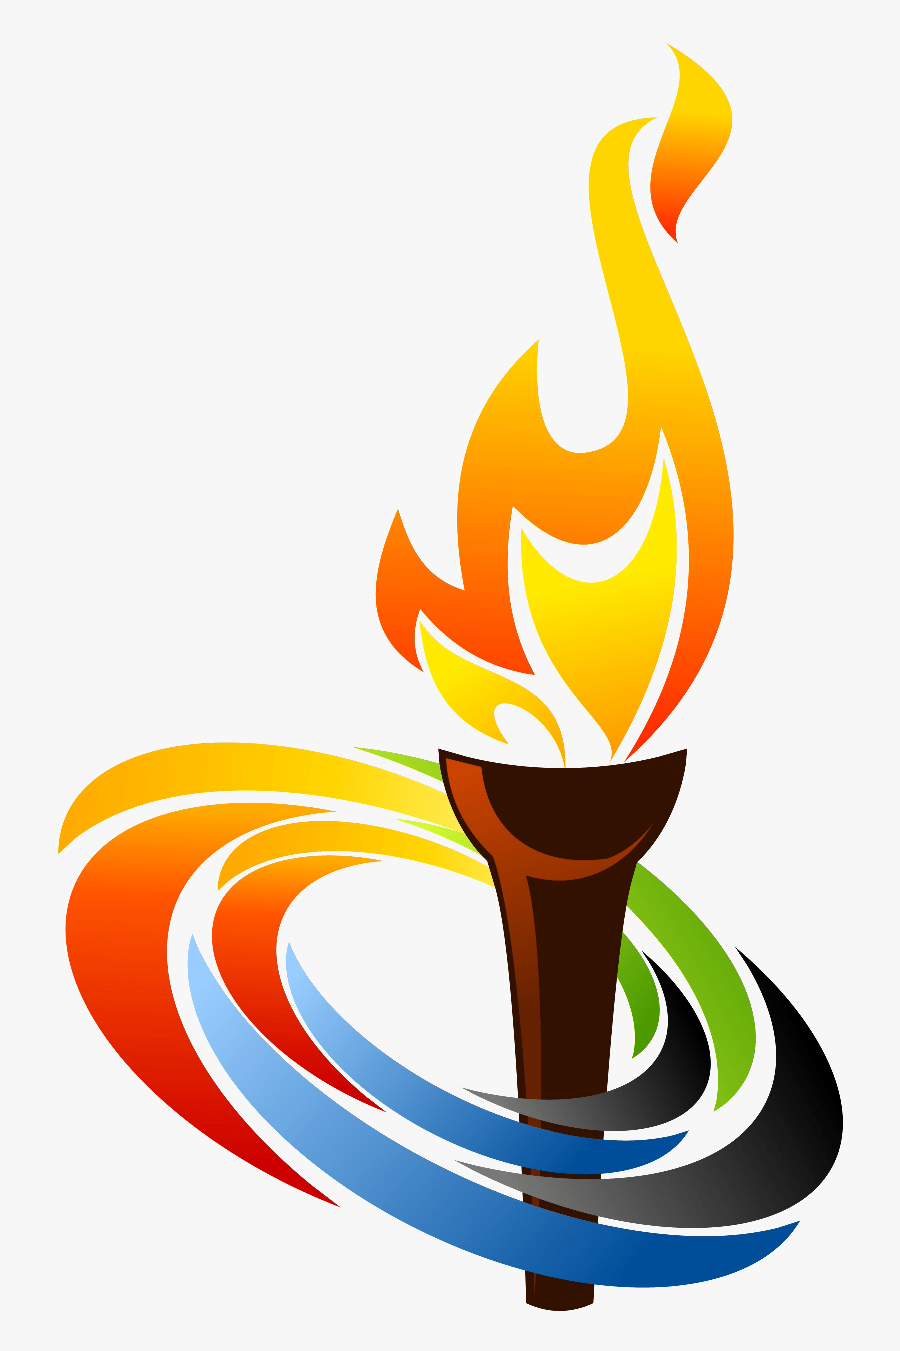 Pics For Torch Flame Png Clip - Clip Art Olympic Torch, Transparent Clipart